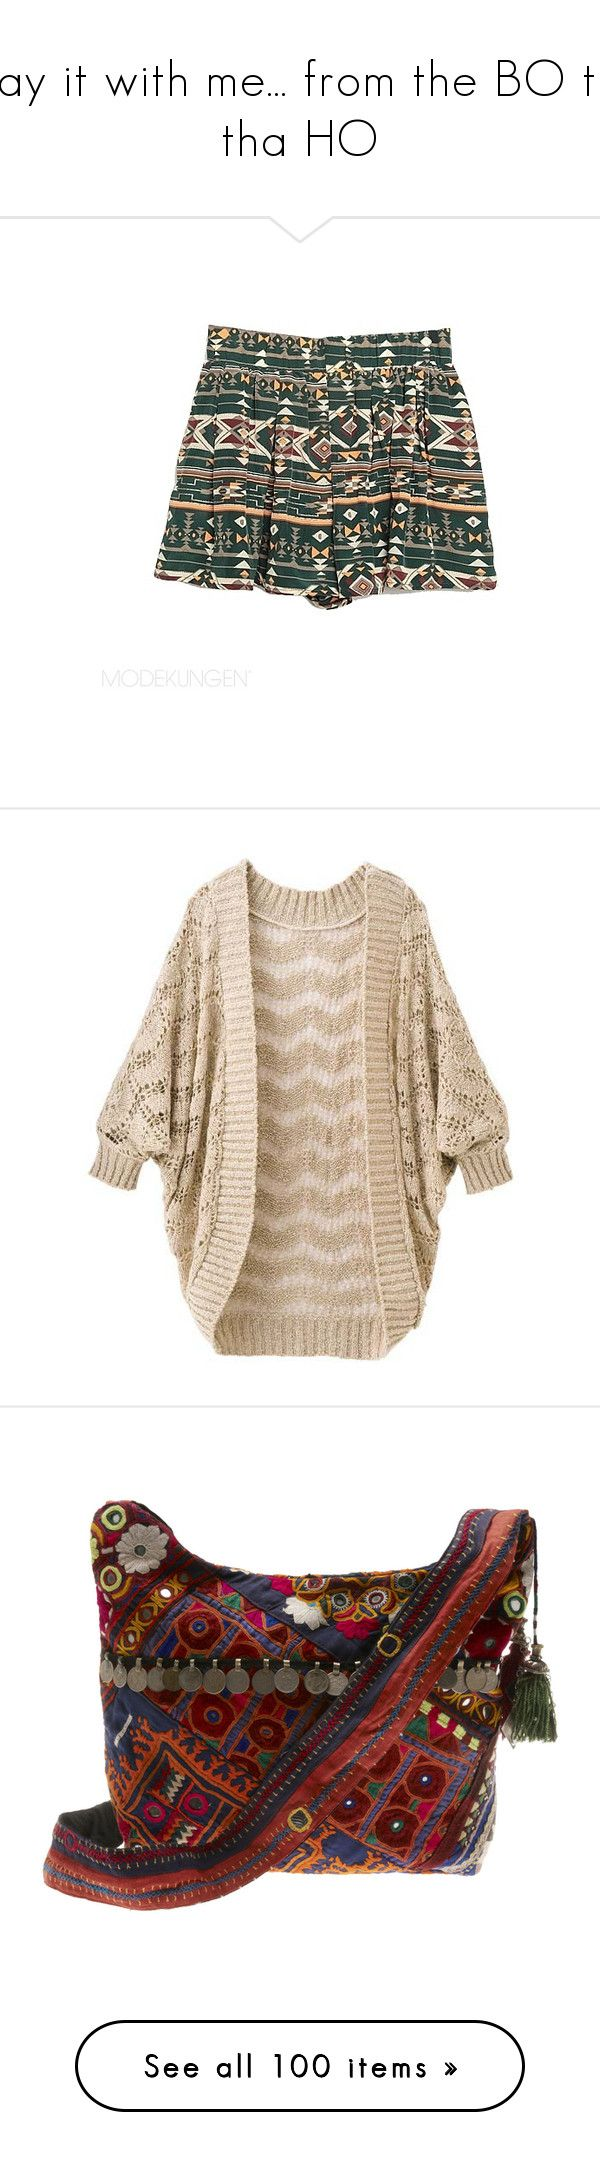 """""""say it with me... from the BO to tha HO"""" by bunny-bisous ❤ liked on Polyvore featuring shorts, bottoms, skirts, pants, aztec shorts, aztec print shorts, tops, cardigans, outerwear and sweaters"""